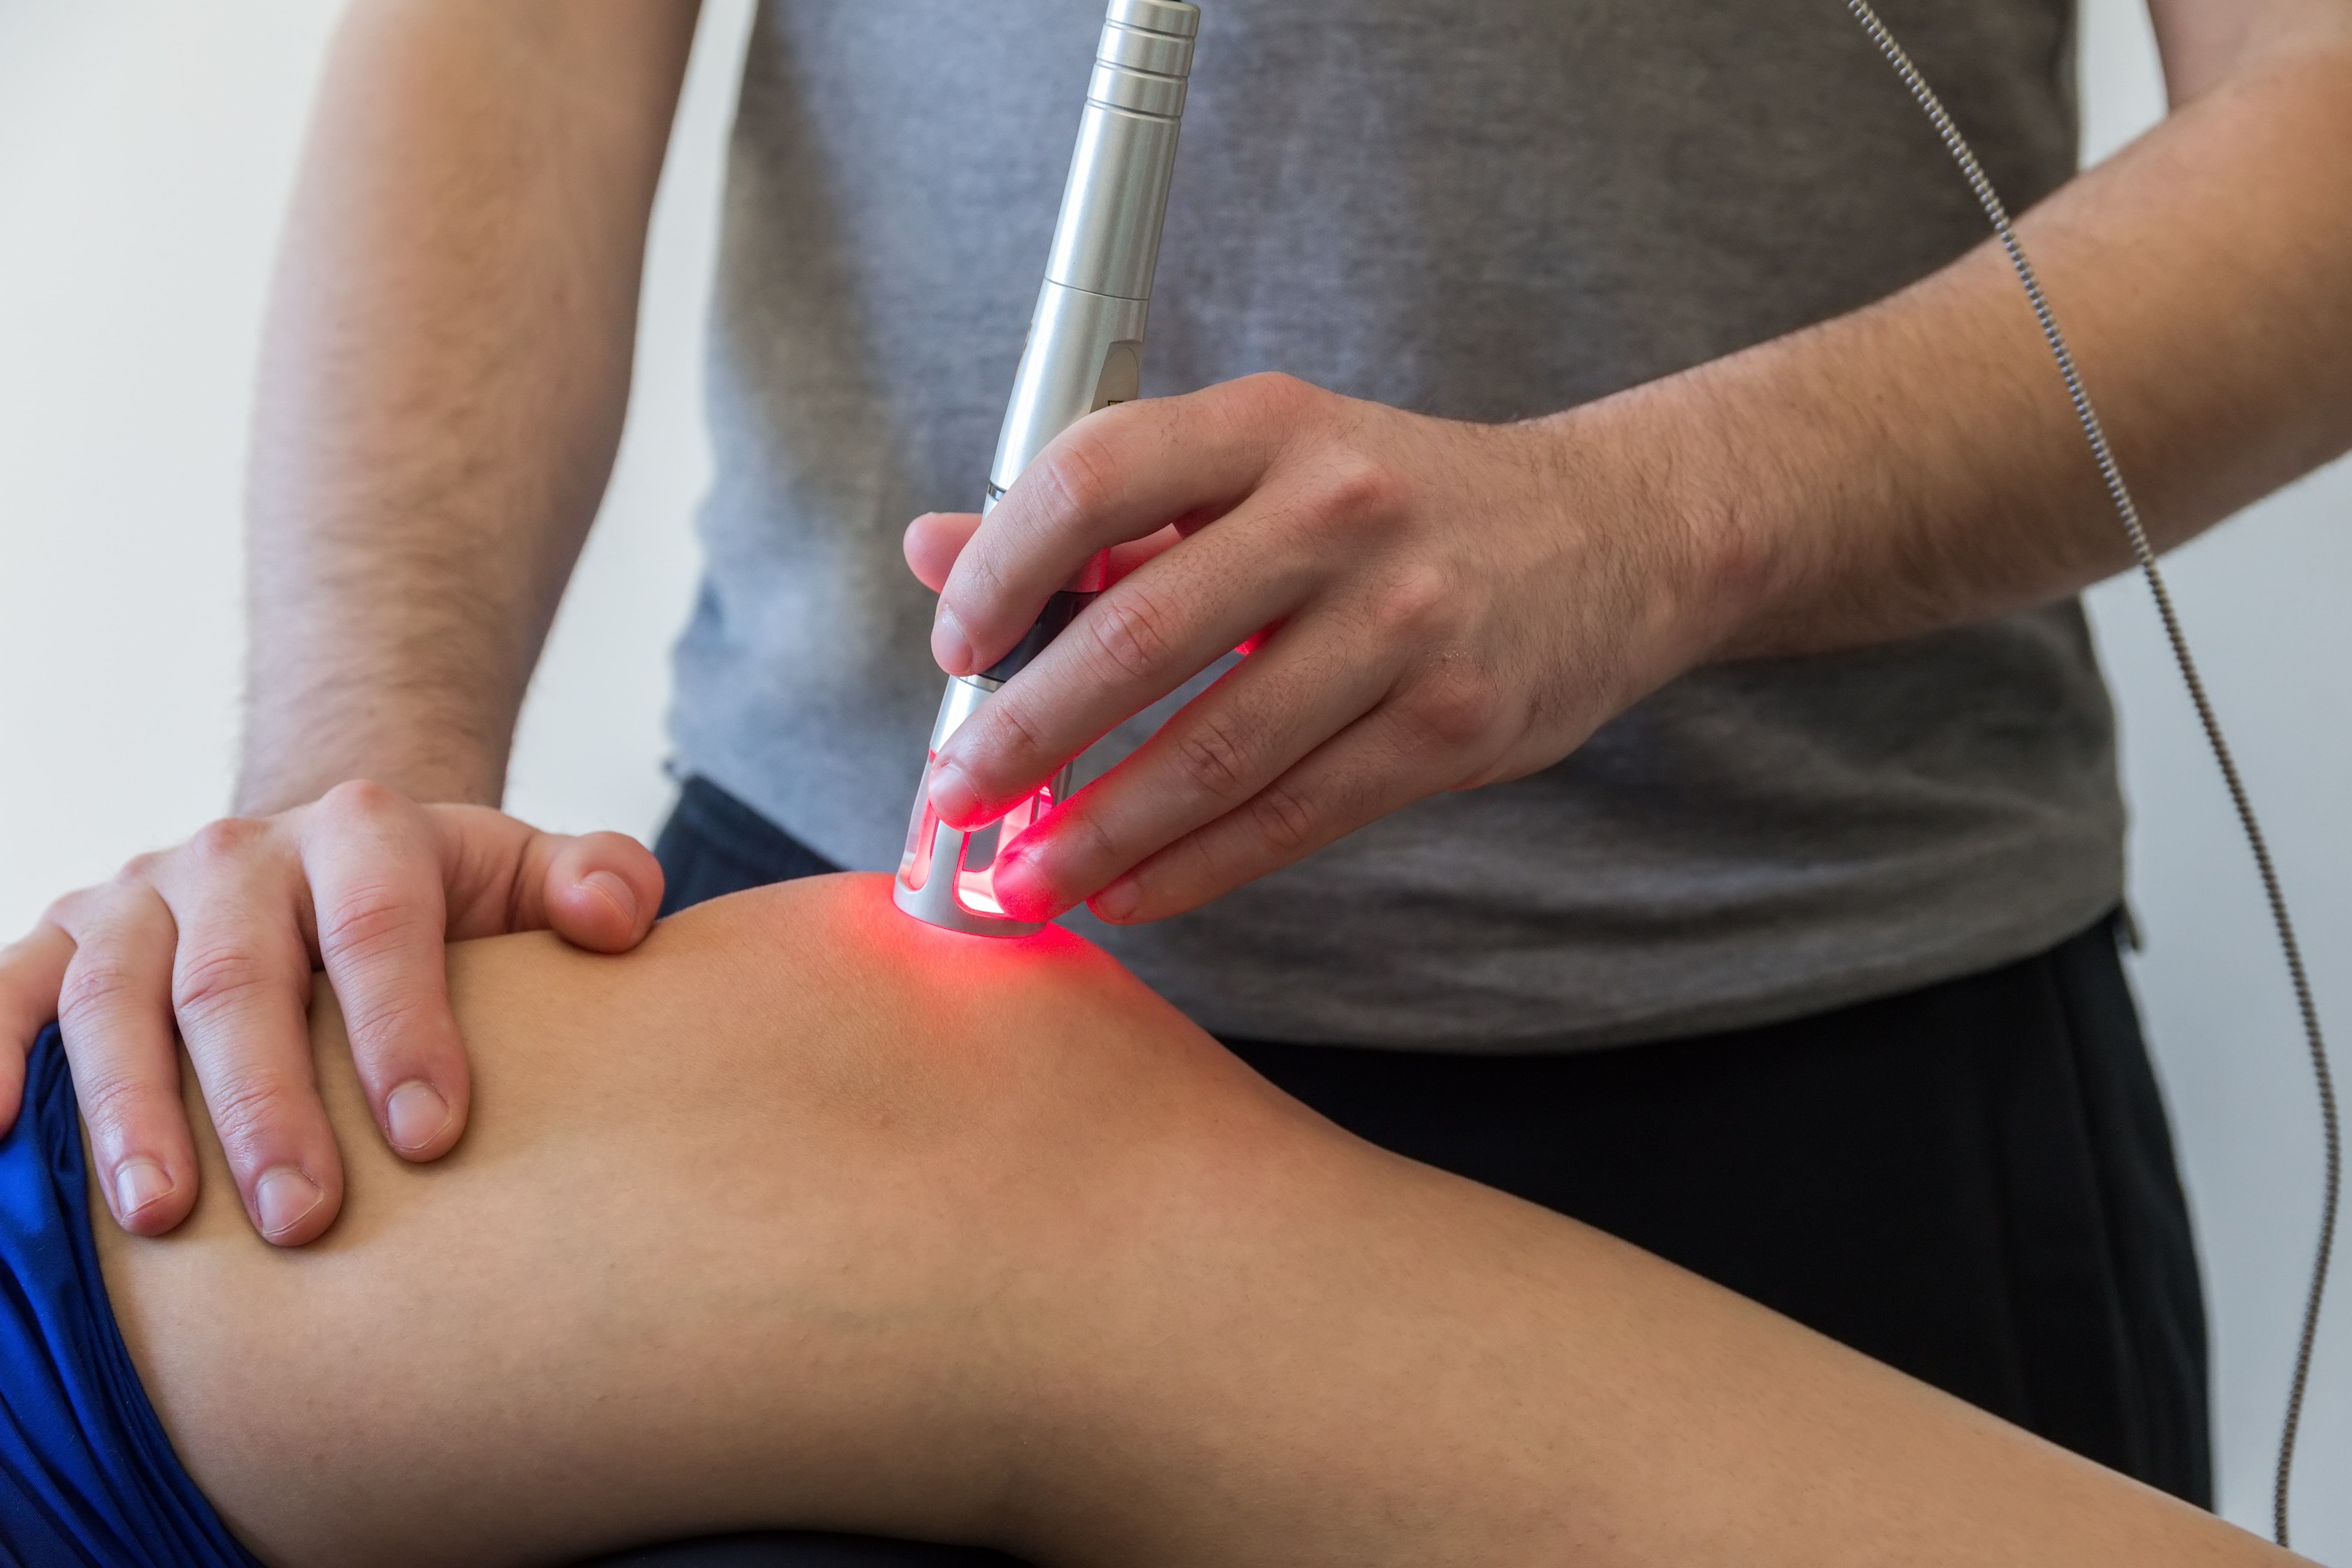 Dr Oda laser pain therapy